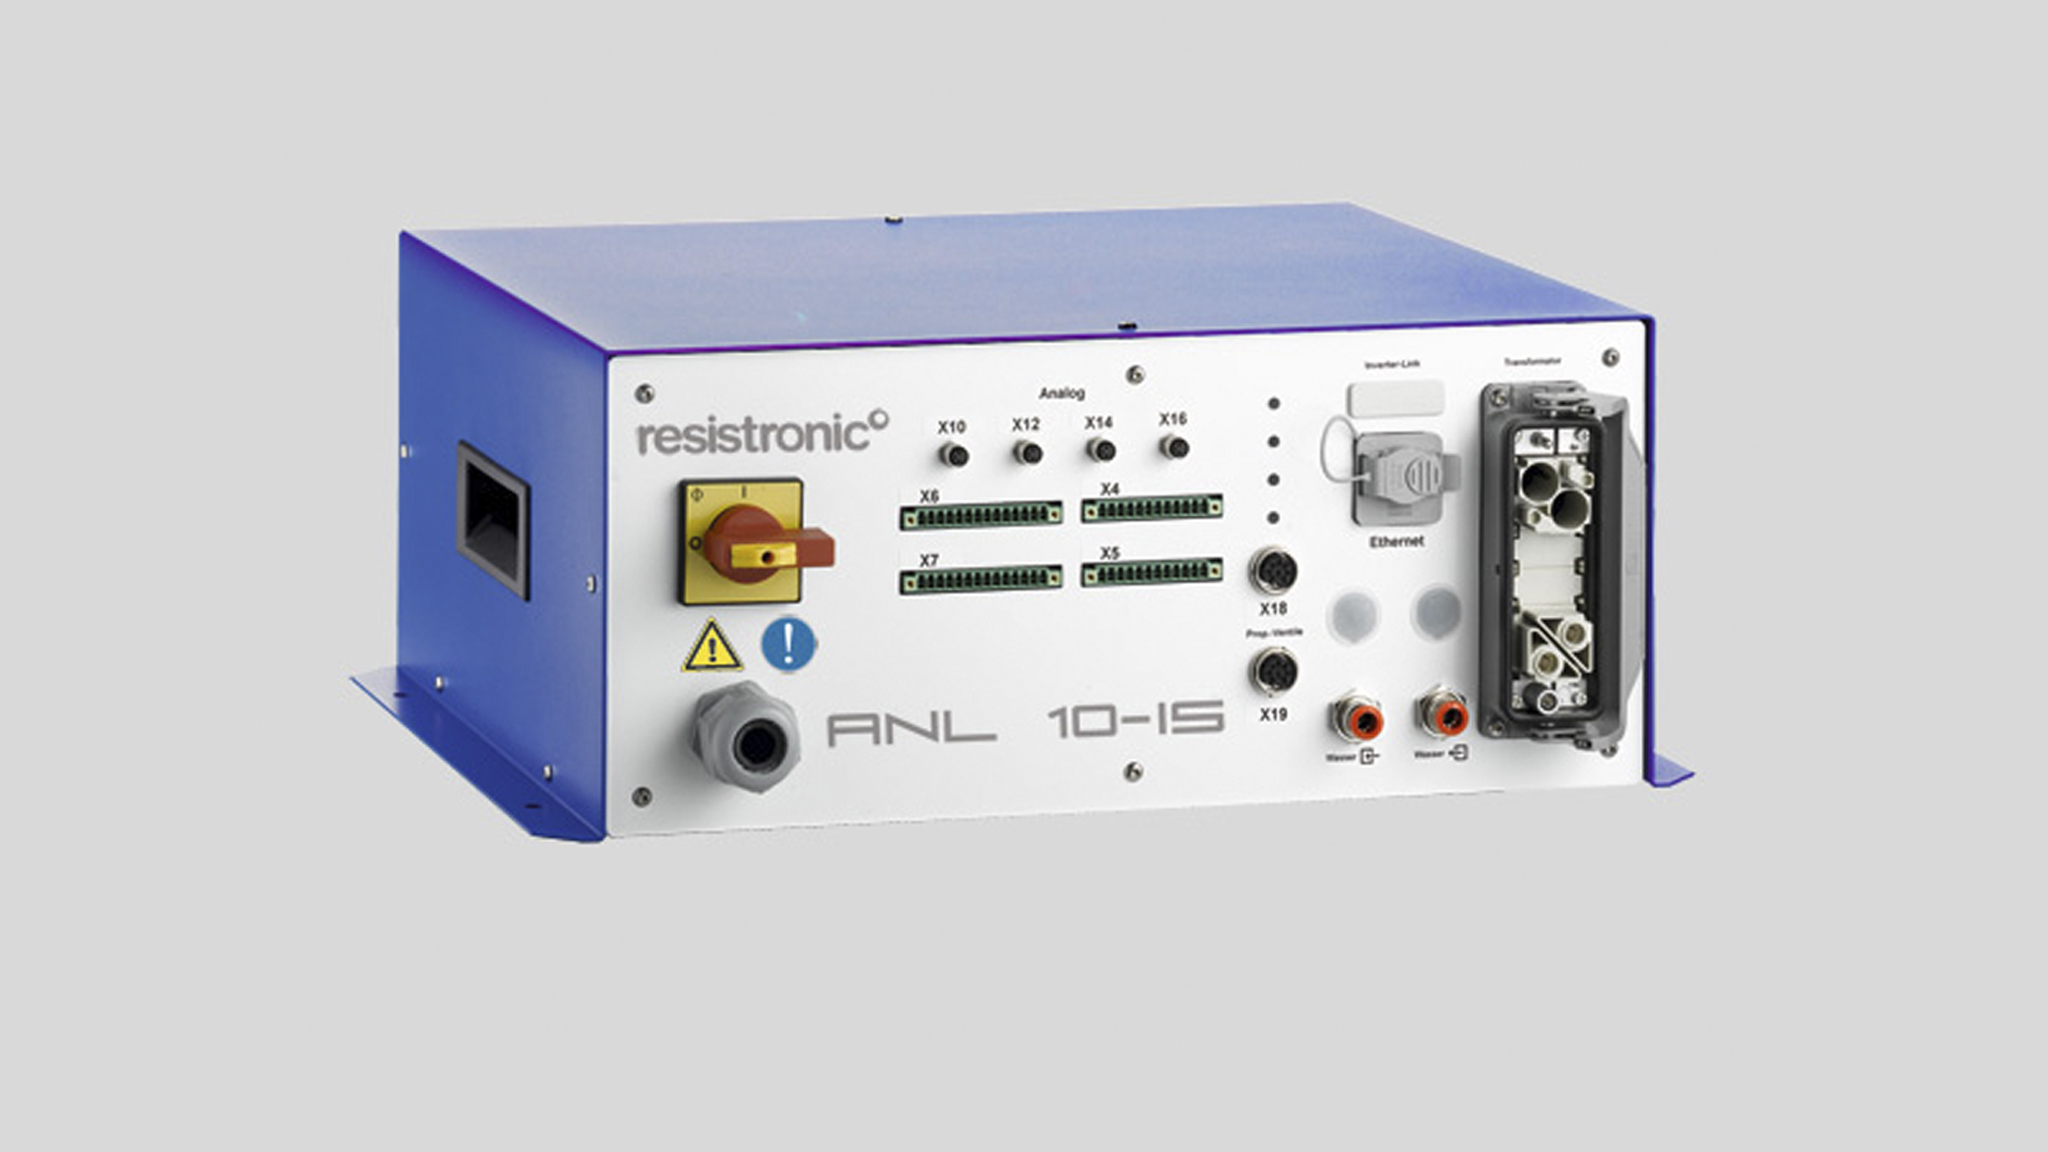 High-end inverter systems for micro-resistance welding ANL 10-IS